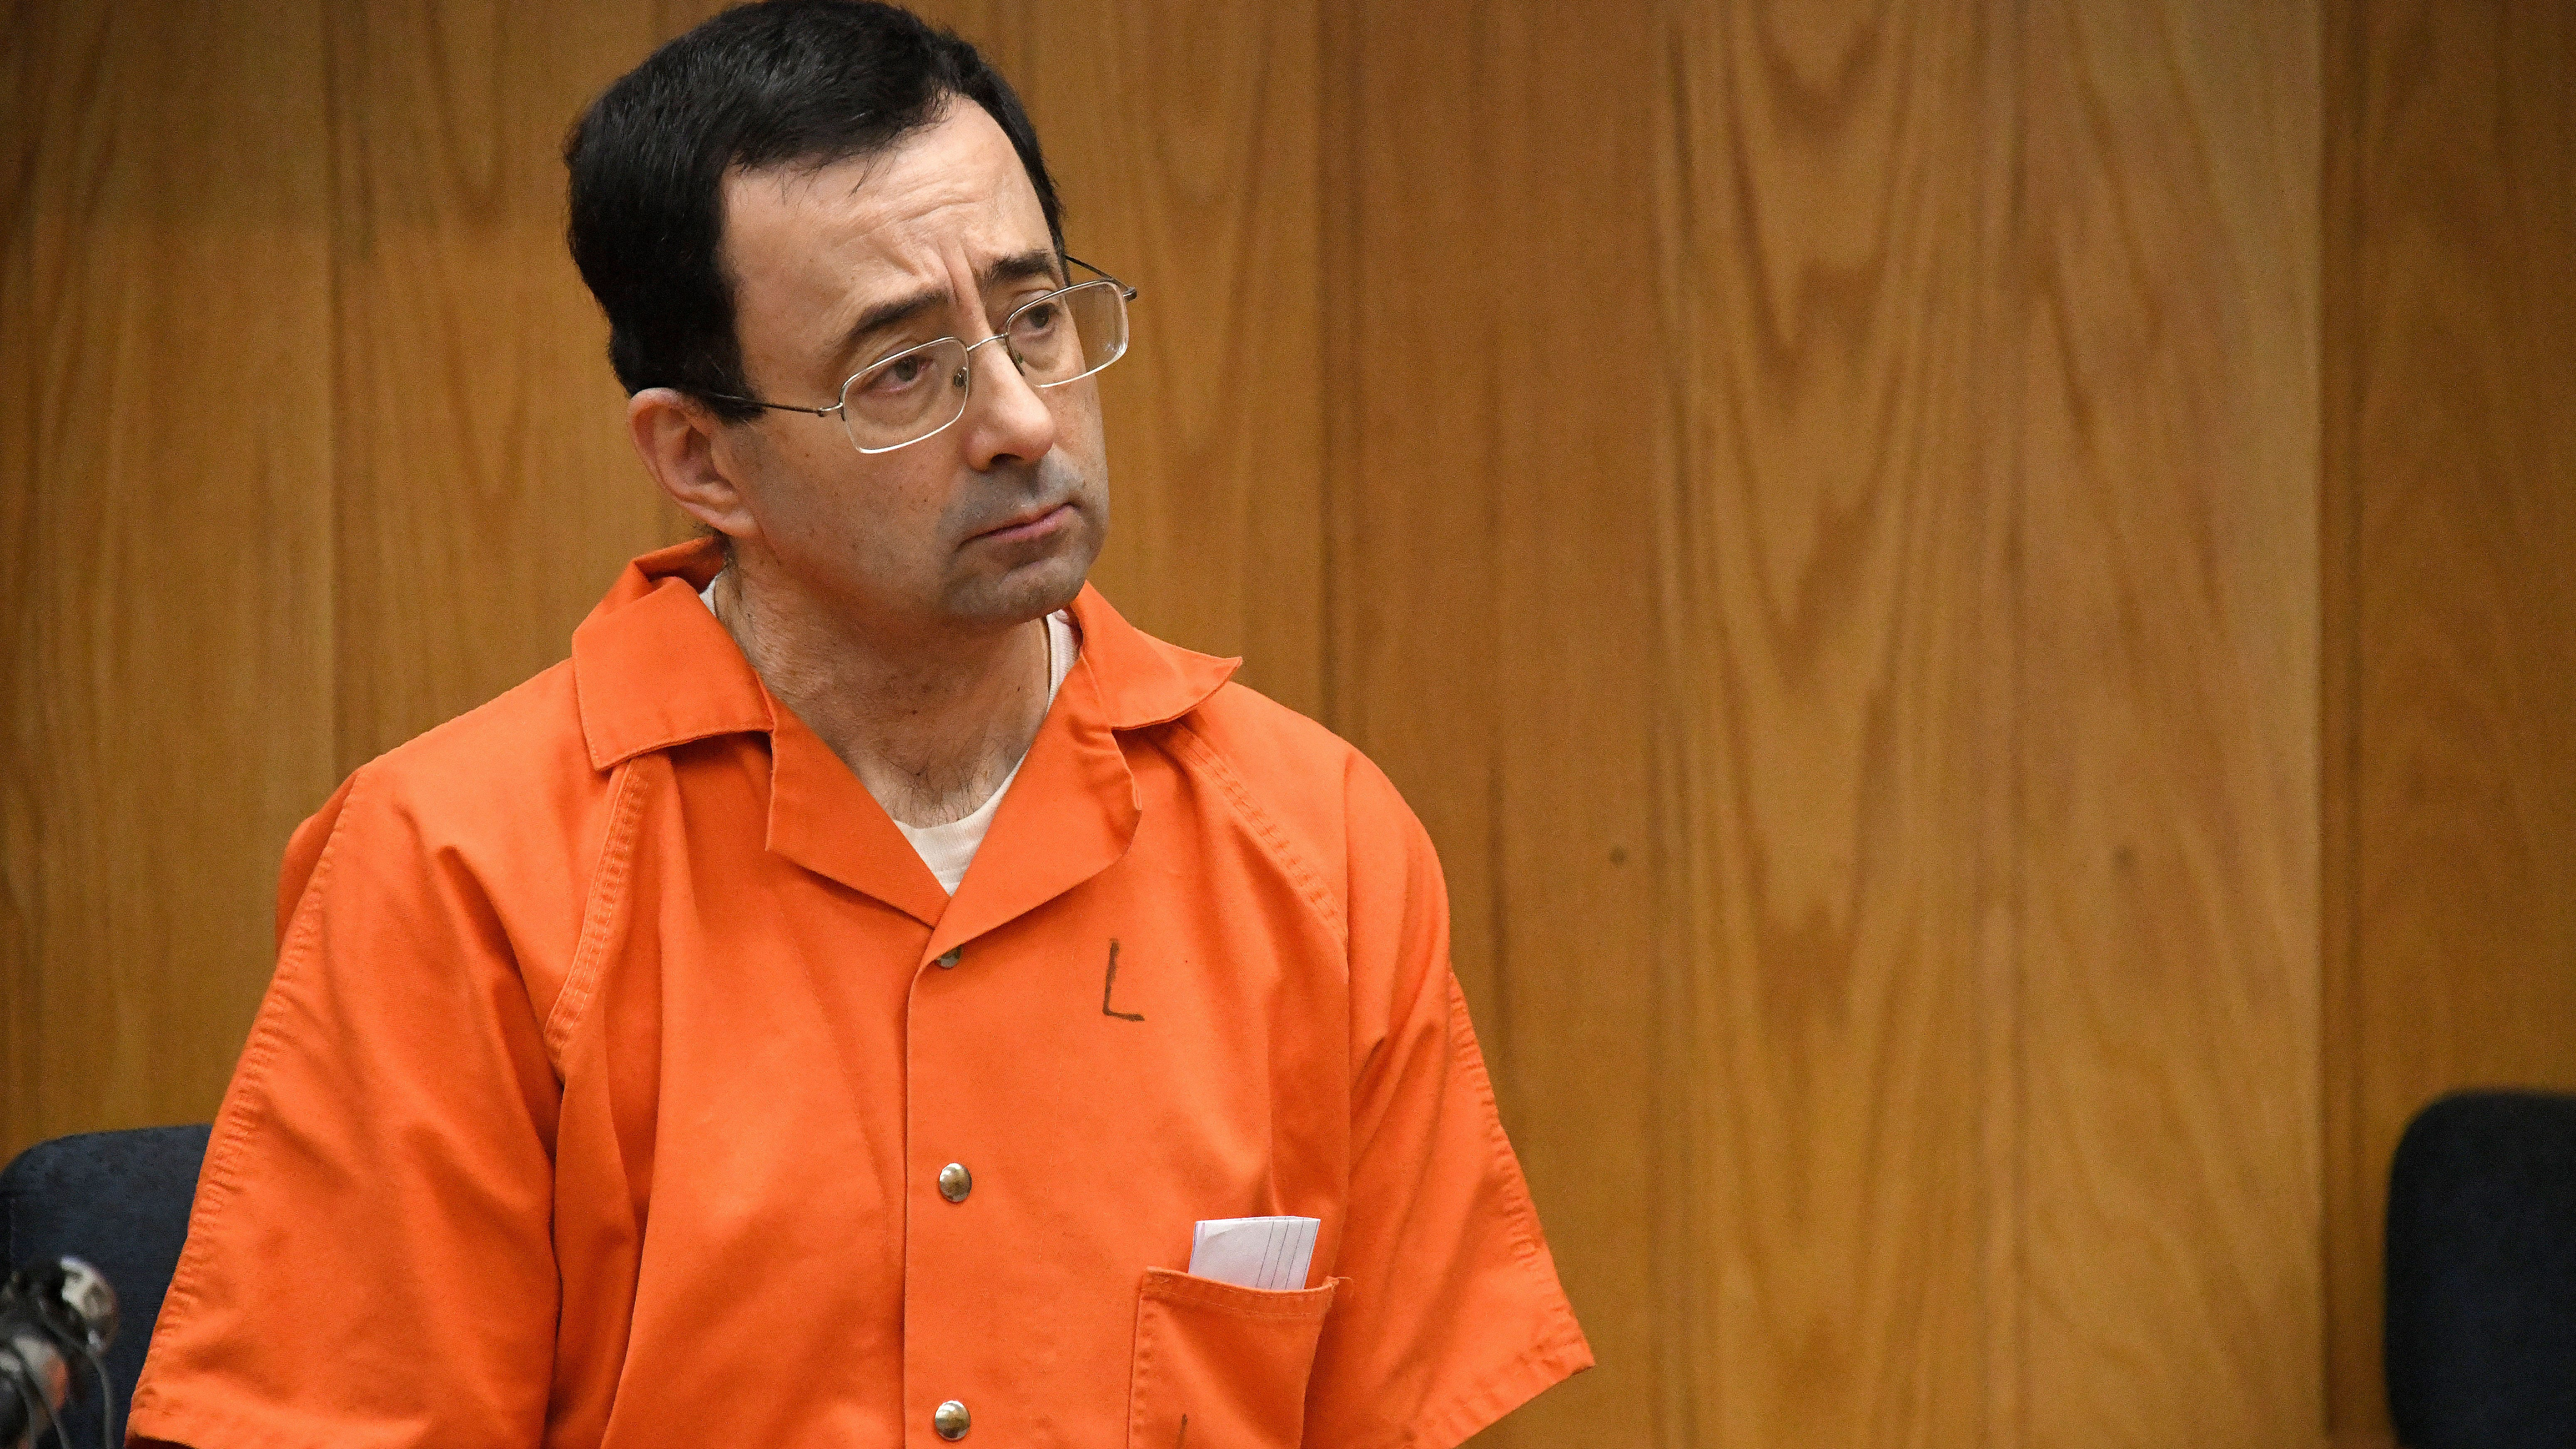 The Michigan State University athletic department has been cleared of  wrongdoing in the eyes of the NCAA in connection to the Larry Nassar scandal.